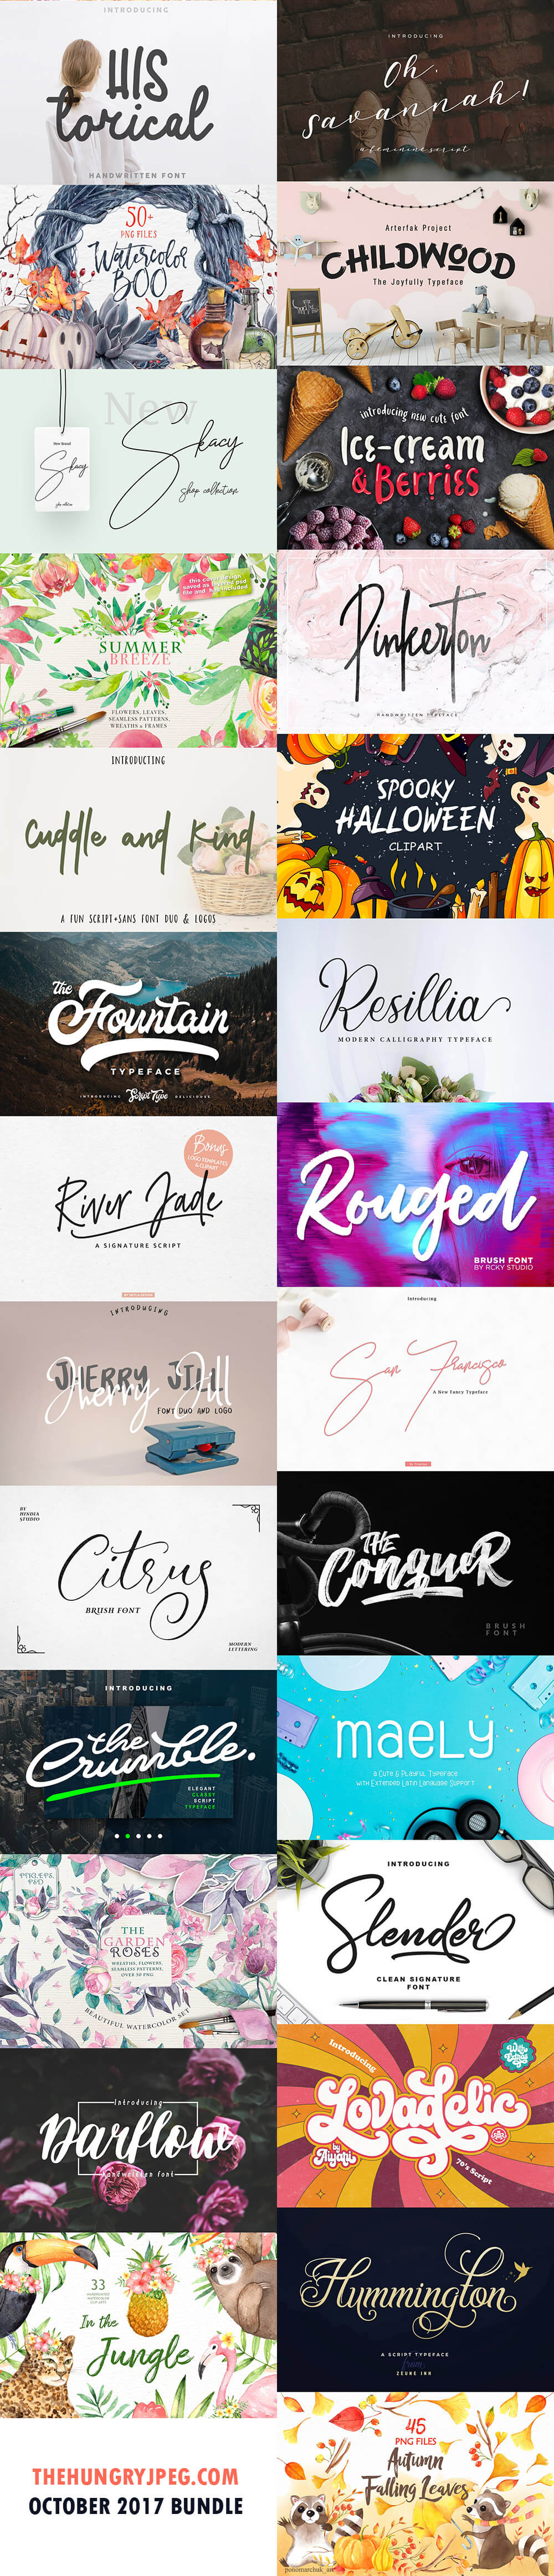 October Fonts & Design Bundle